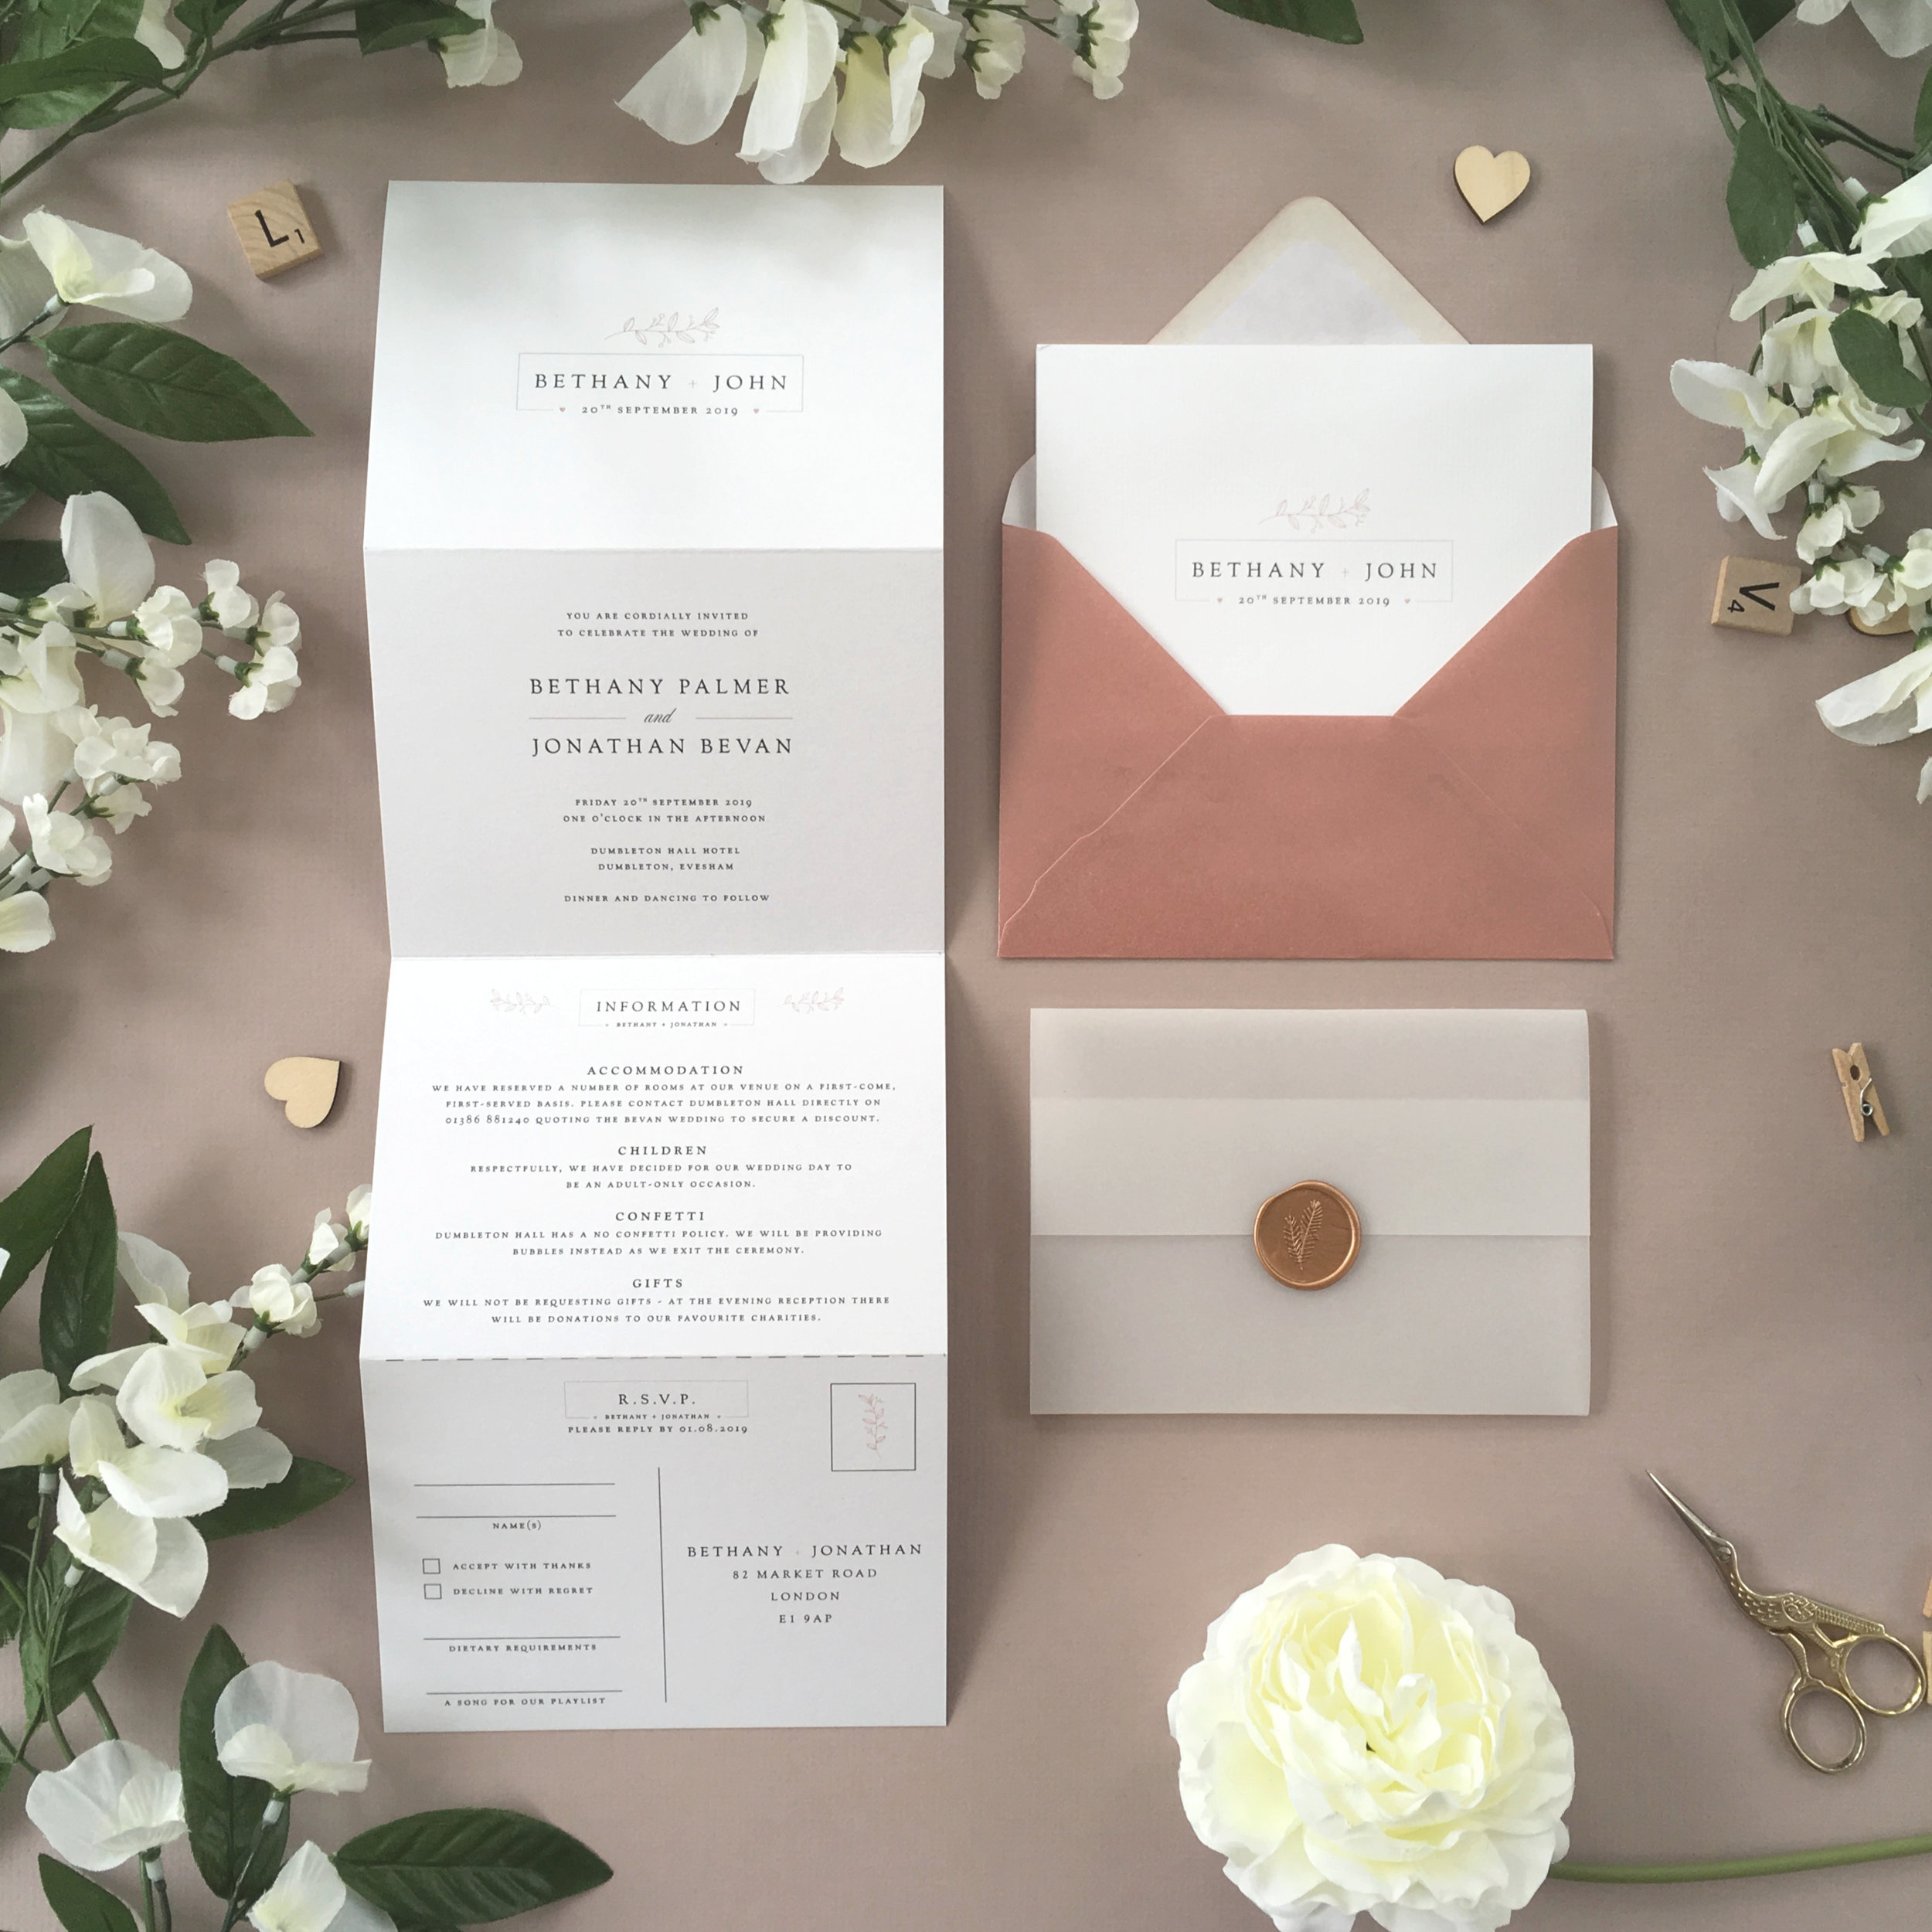 Newbury - Simple and subtle florals are used alongside traditional typography for a classical and elegant concertina invitation design, from our Newbury collection.Our concertina invitations are a great all-in-one solution, with a detachable RSVP at the bottom of the invitation - all guests need to do is fill in their details, put a stamp in the corner and post!Concertina invitations can be provided on an as-is basis, or can be provided bound with a vellum jacket and timeless wax seal, or tied with ribbon or twine for a lovely hand-finished approach.- Concertina Invitation - from £1.95- Ribbon or Twine - £0.40- Vellum Jacket - £0.40- Wax Seal - £0.85 (Custom engraving also available)White envelope provided as standard with coloured upgrade available.